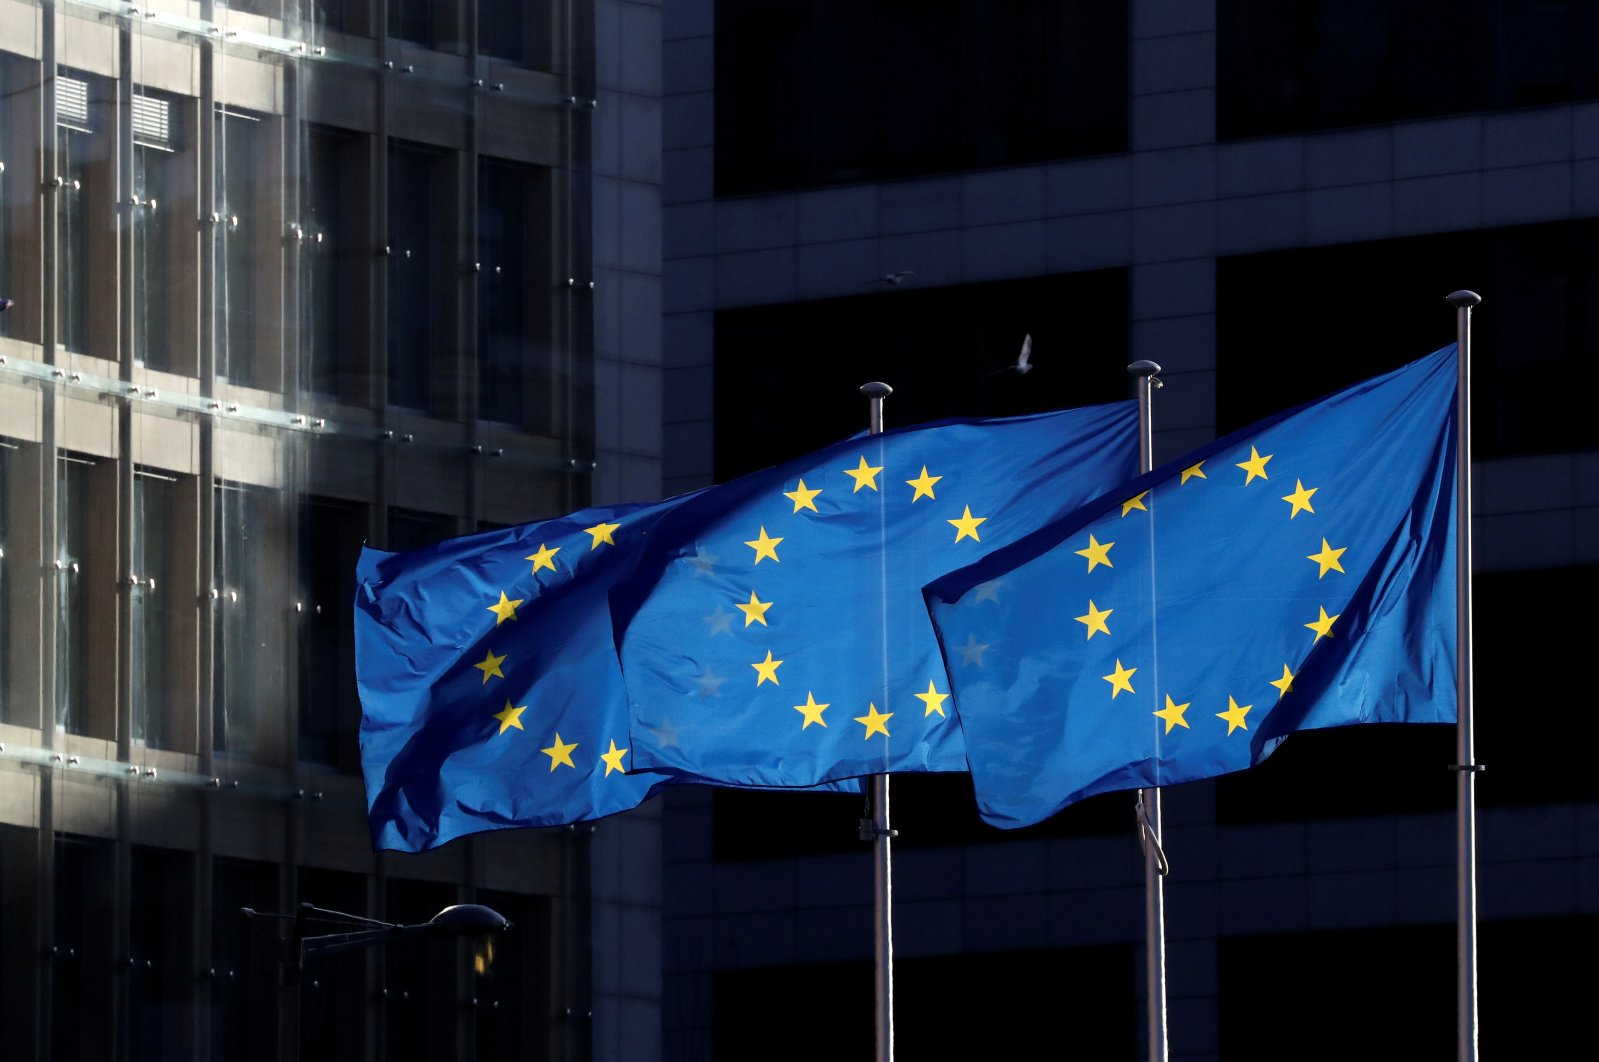 European Union flags fly outside the European Commission headquarters in Brussels, Belgium, Dec. 12, 2019. (Reuters Photo)